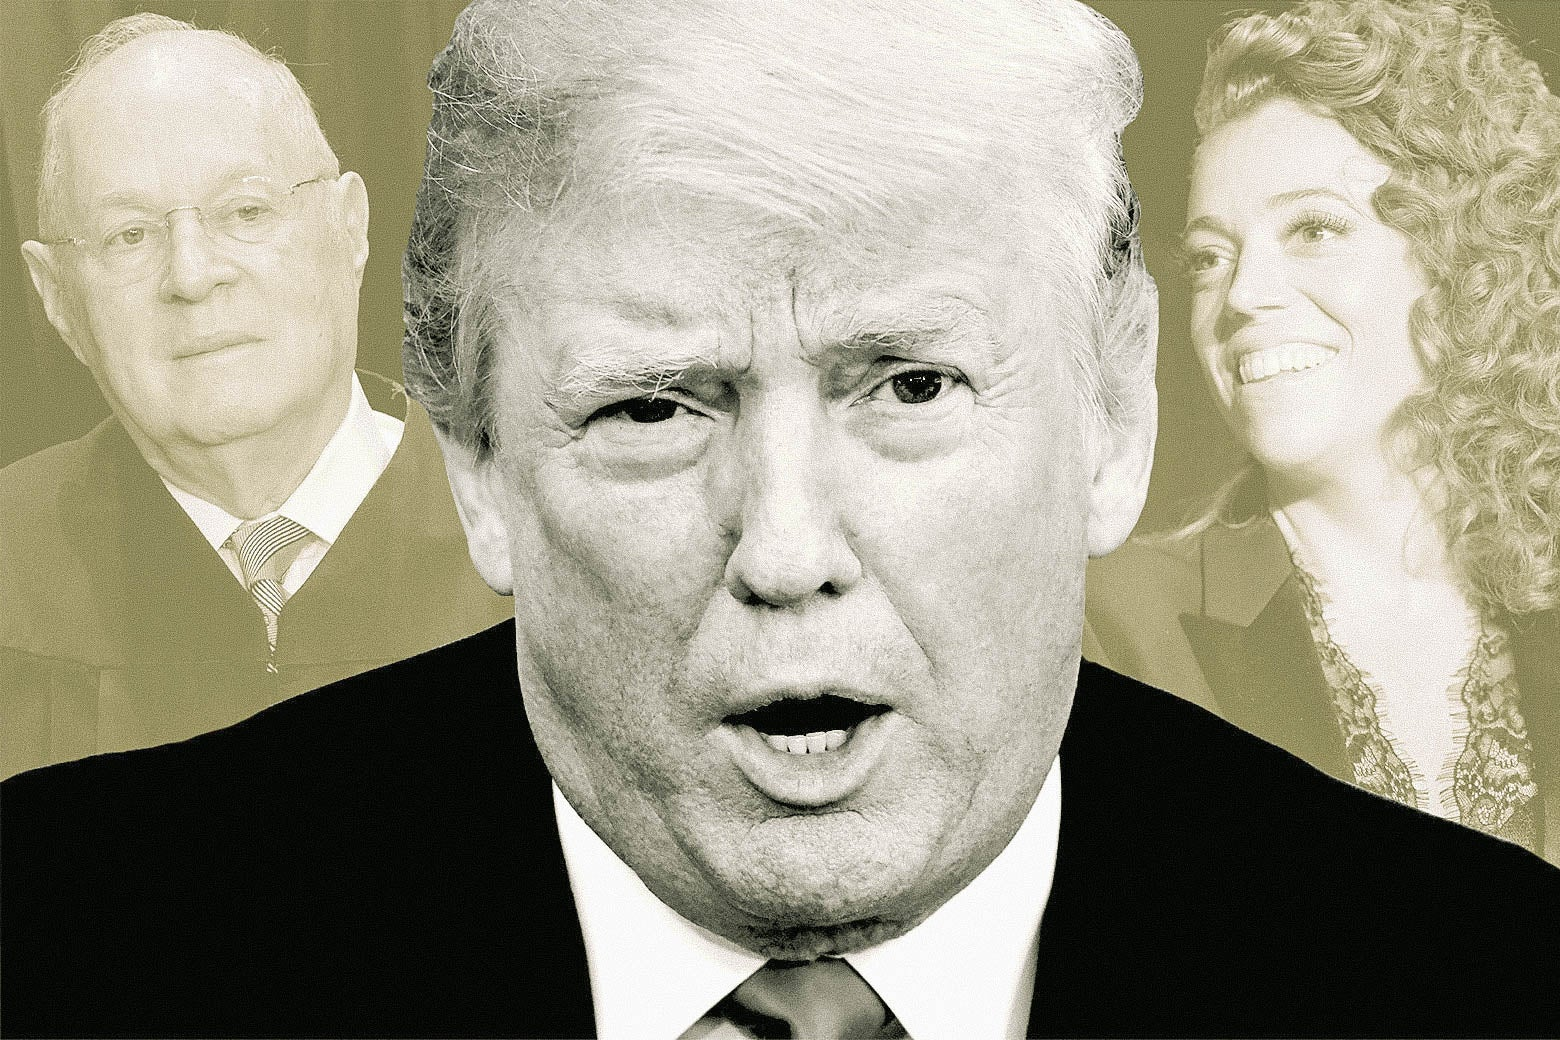 From left, Anthony Kennedy, Donald Trump, and Michelle Wolf